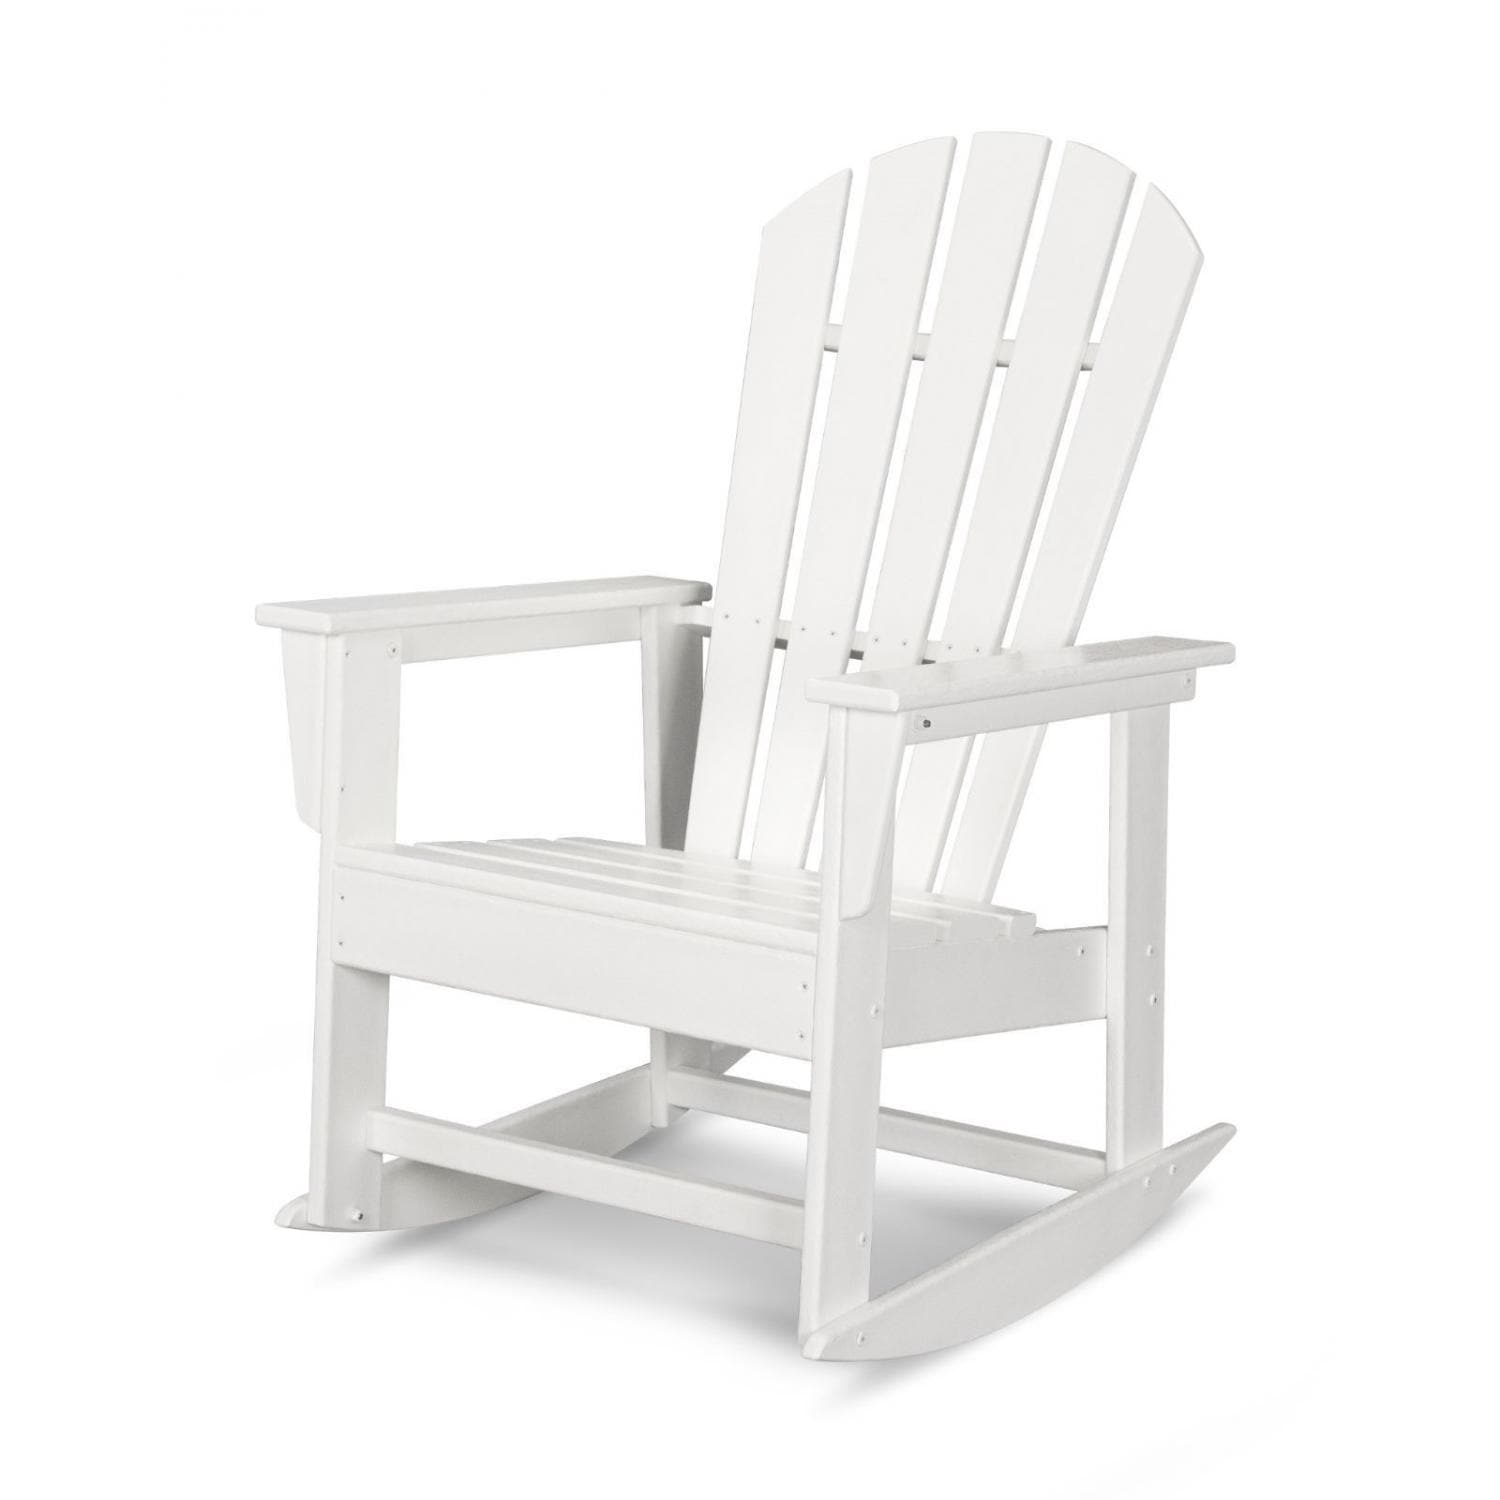 porch chair outdoor chiar adirondack fir rocking rocker outsunny patio rustic wood